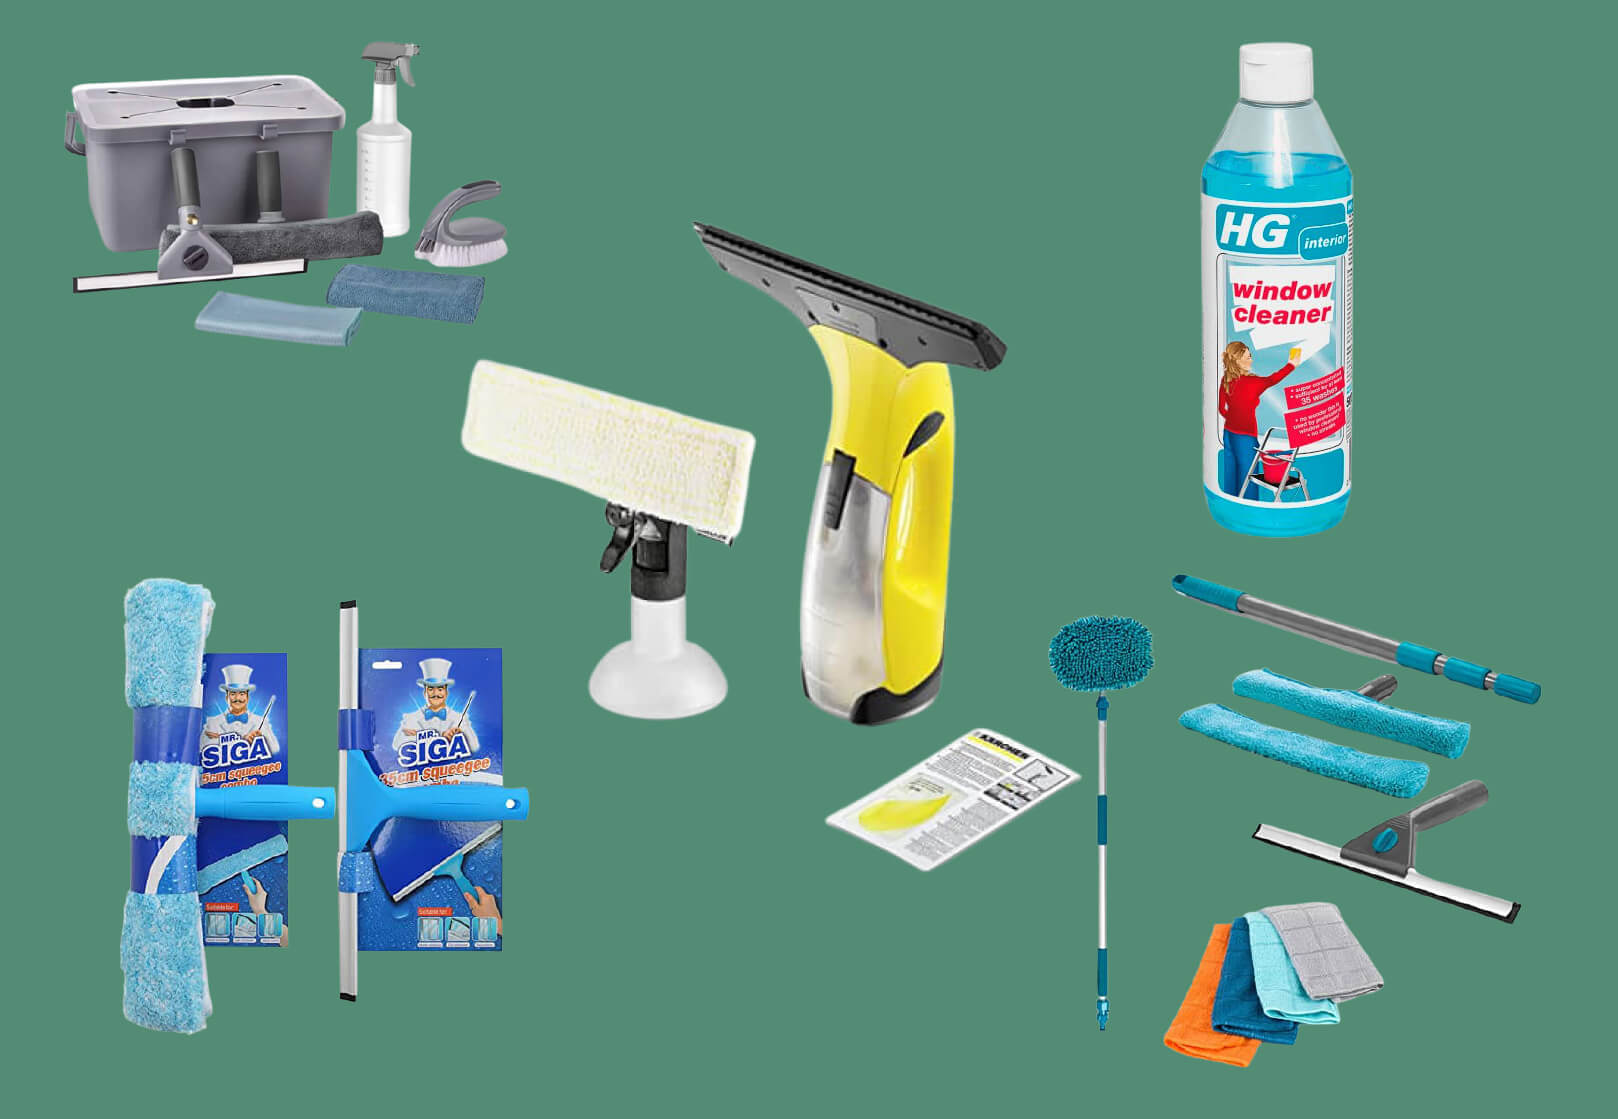 Best 5 UK Window cleaning kits | Professional cleaning kits